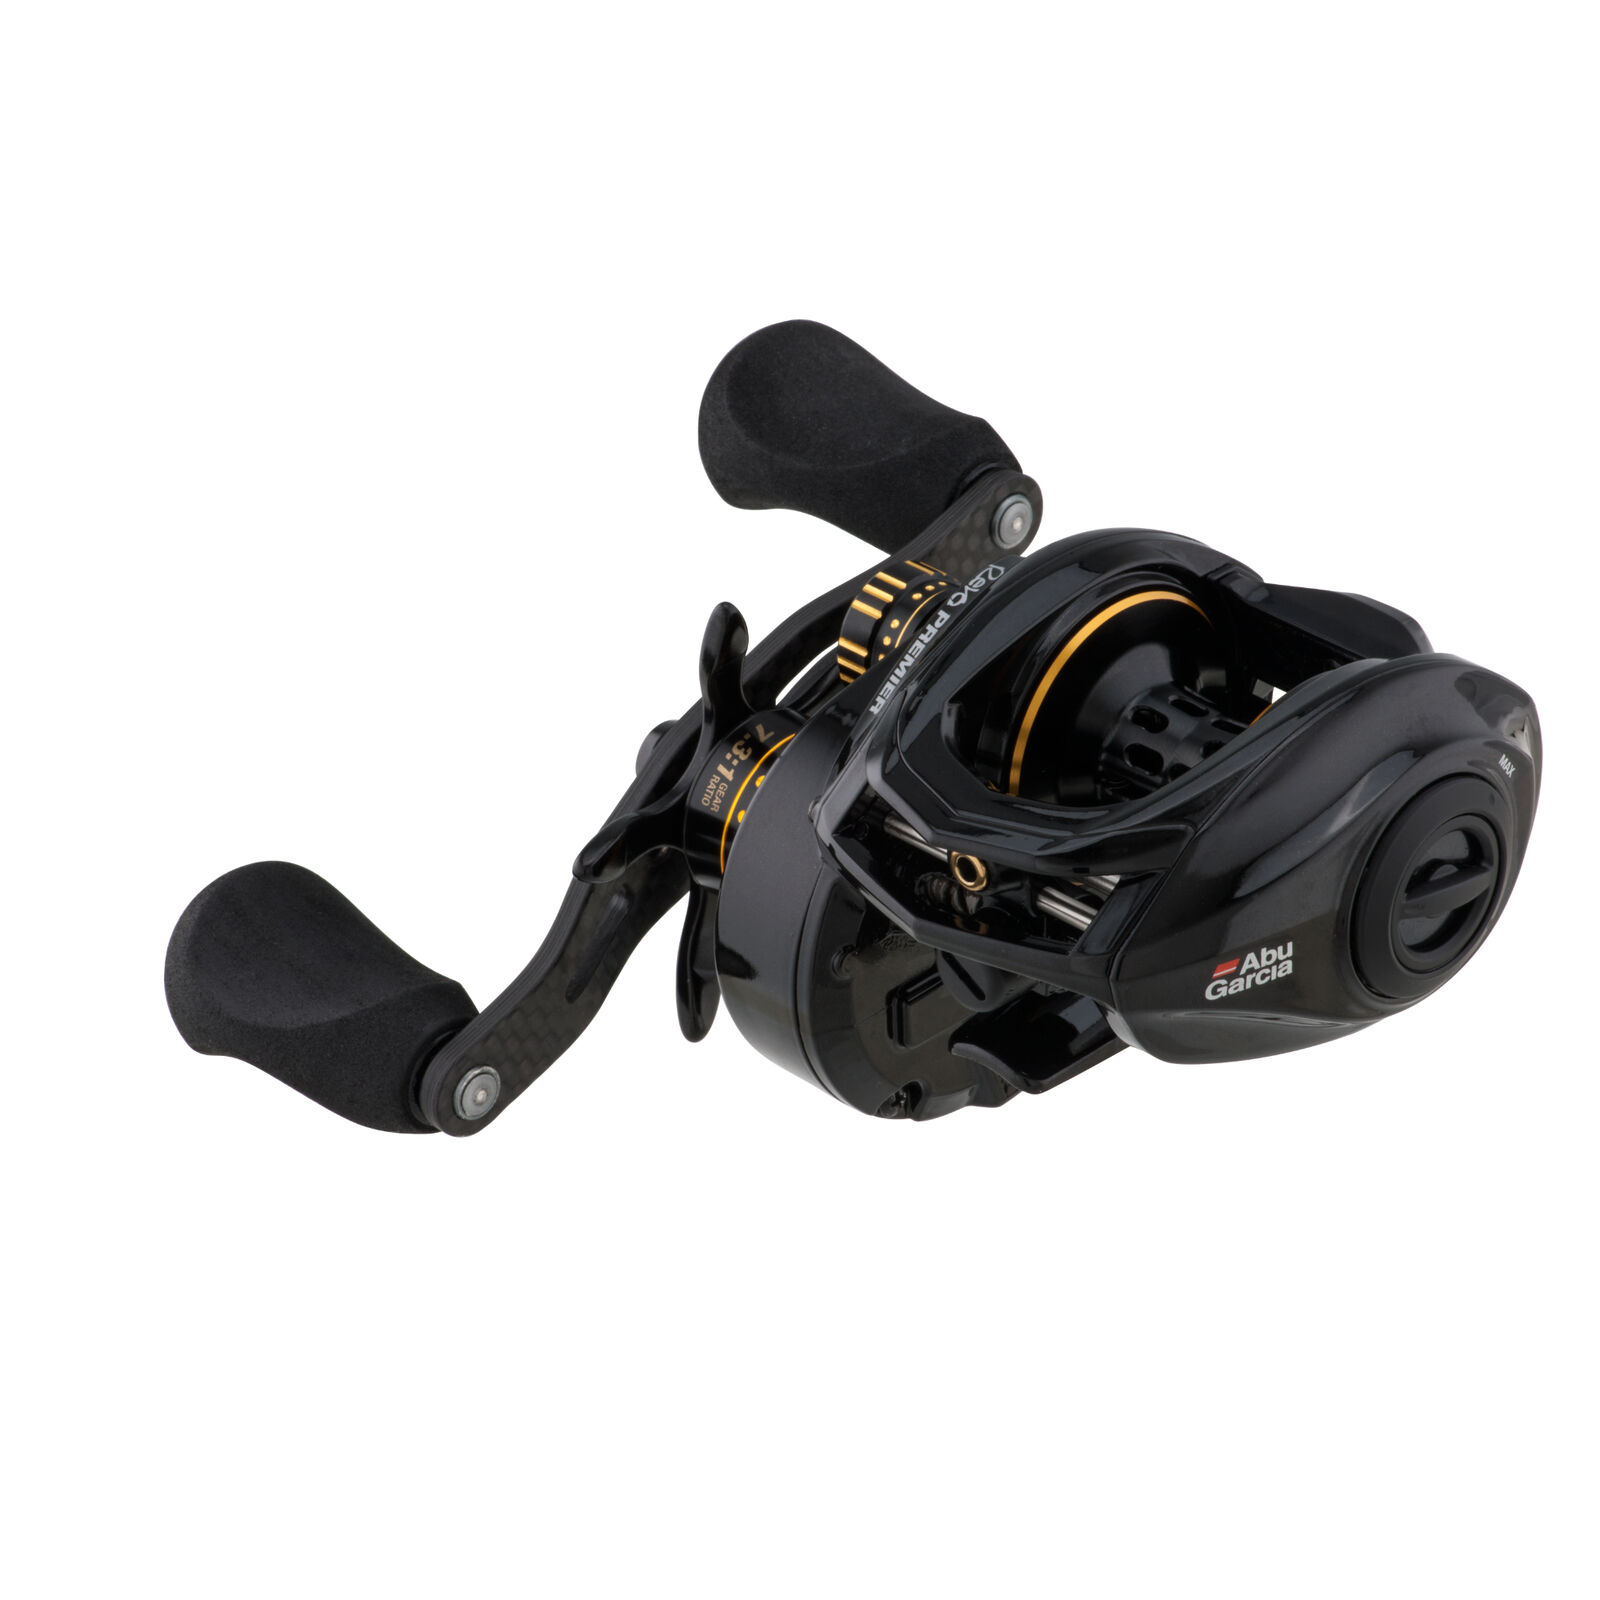 Abu Garcia REVO 4 PREMIER HIGH SPEED RIGHT HAND Low Profile Bait Casting Reel